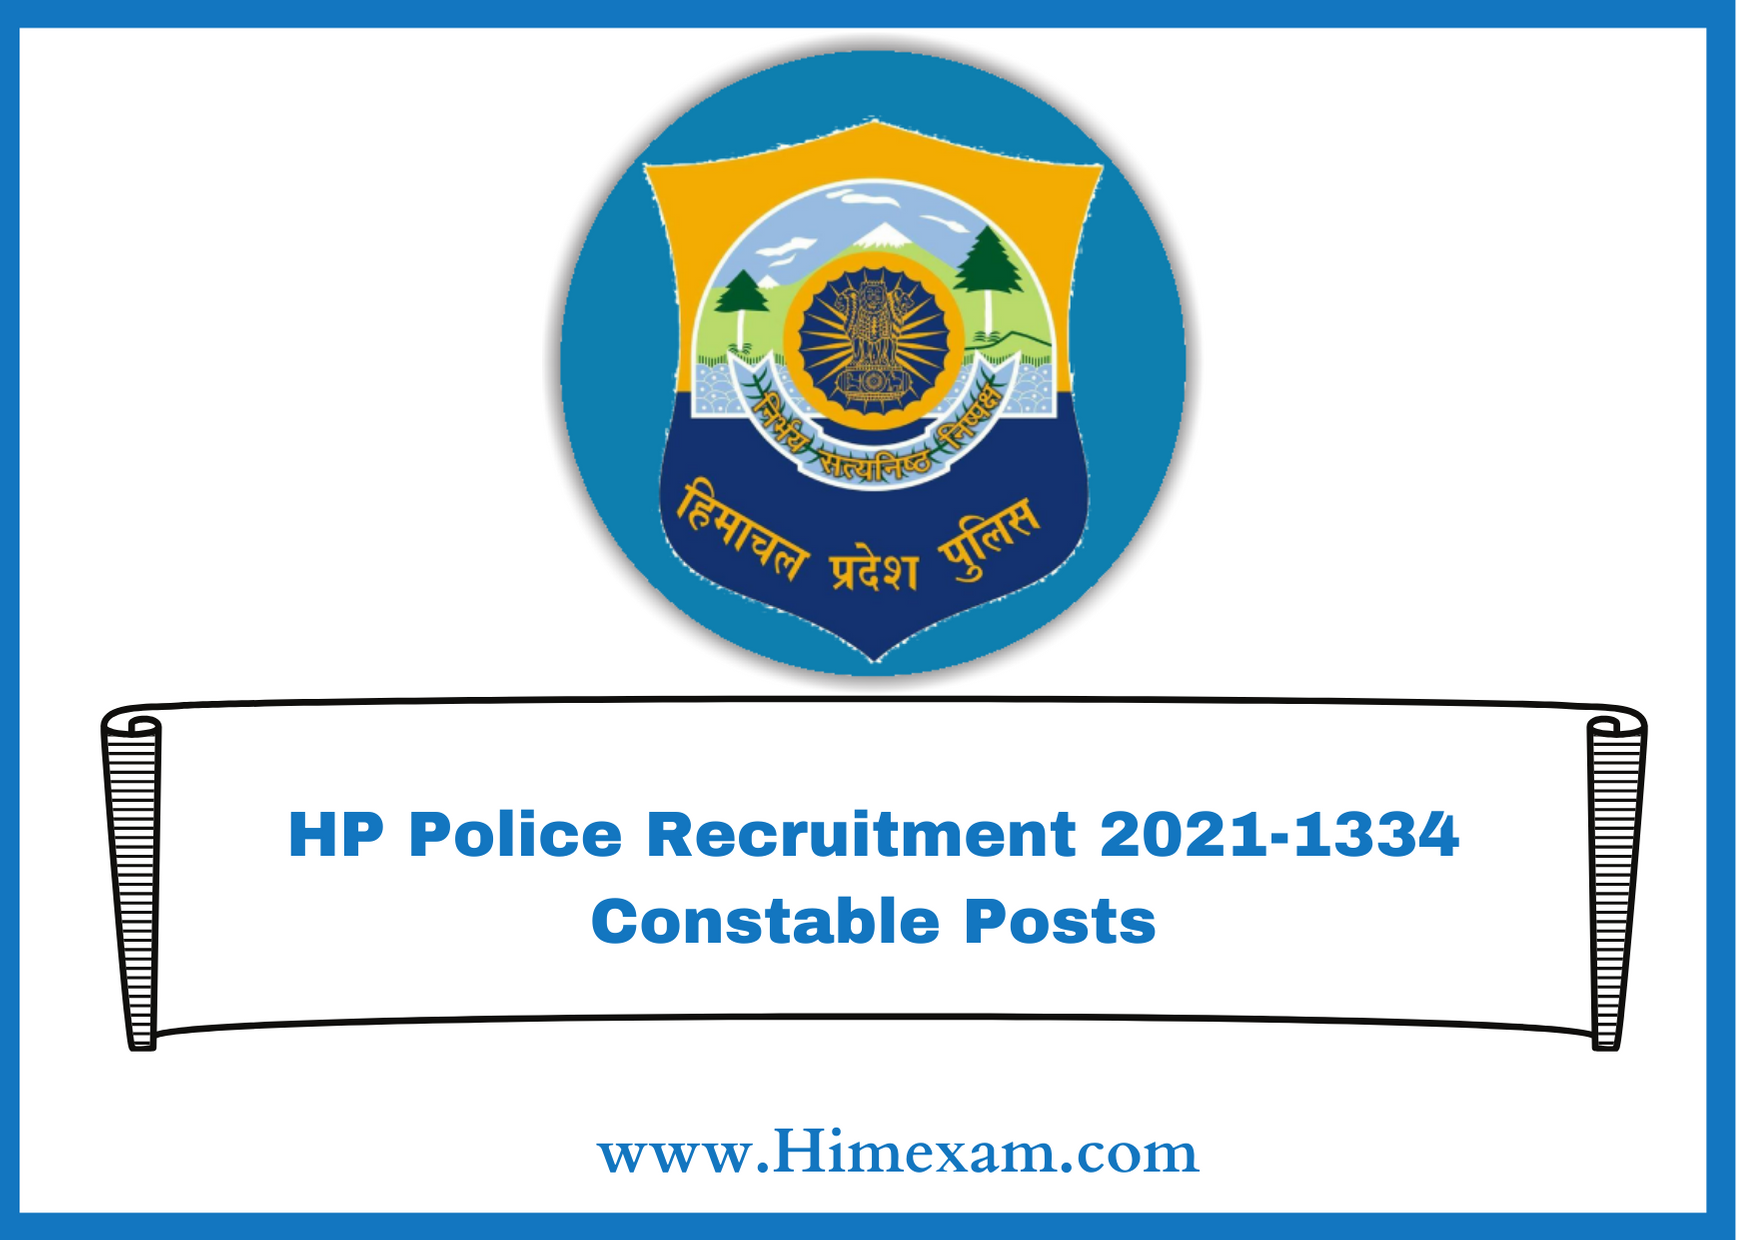 HP Police Recruitment 2021-1334 Constable Posts